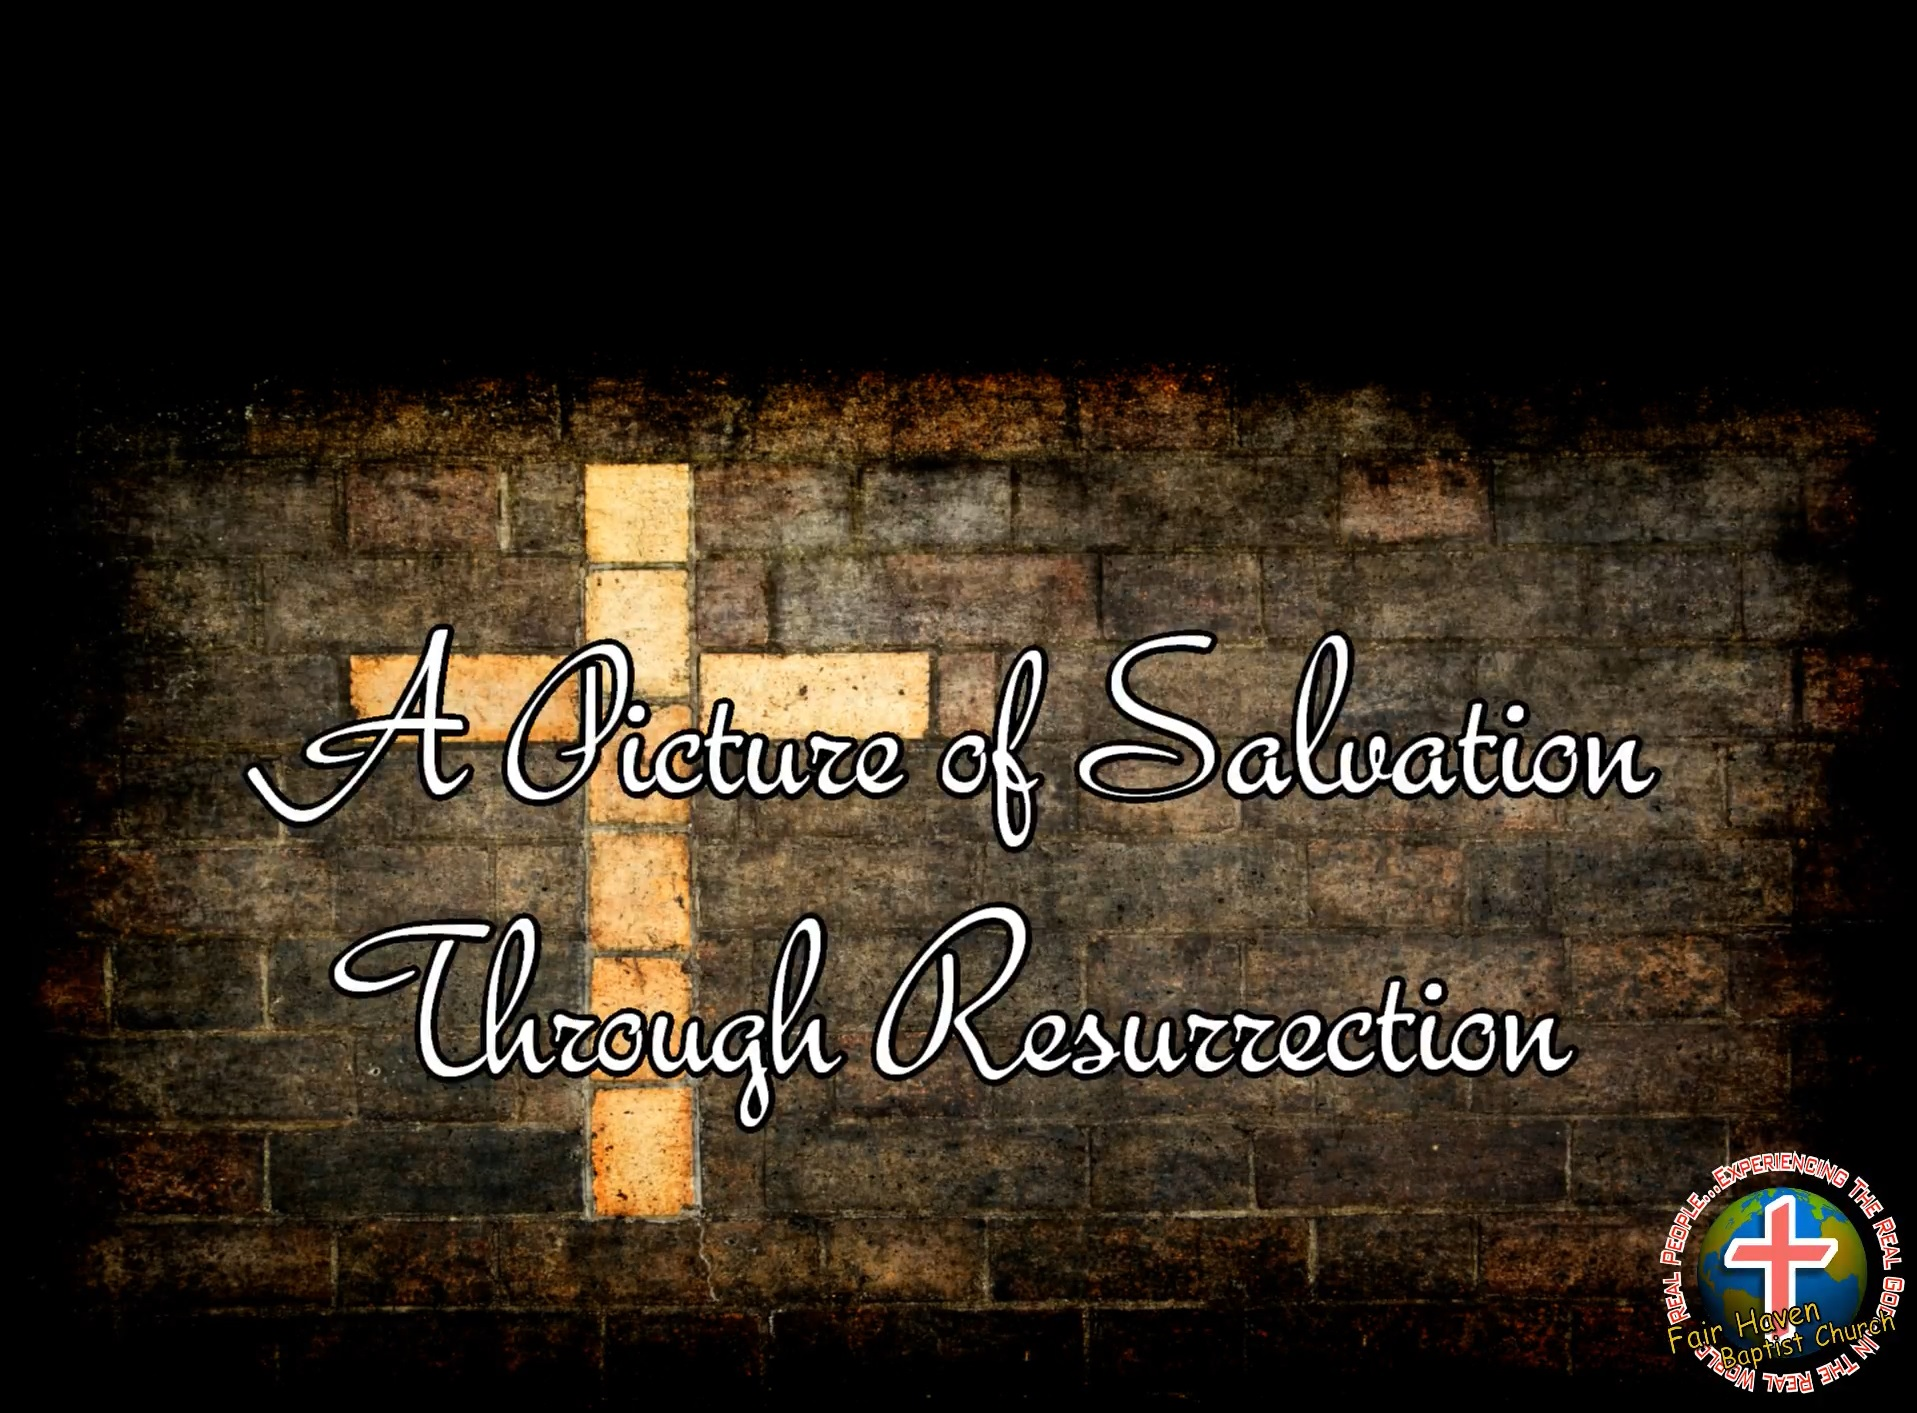 A Picture of Salvation Through Resurrection